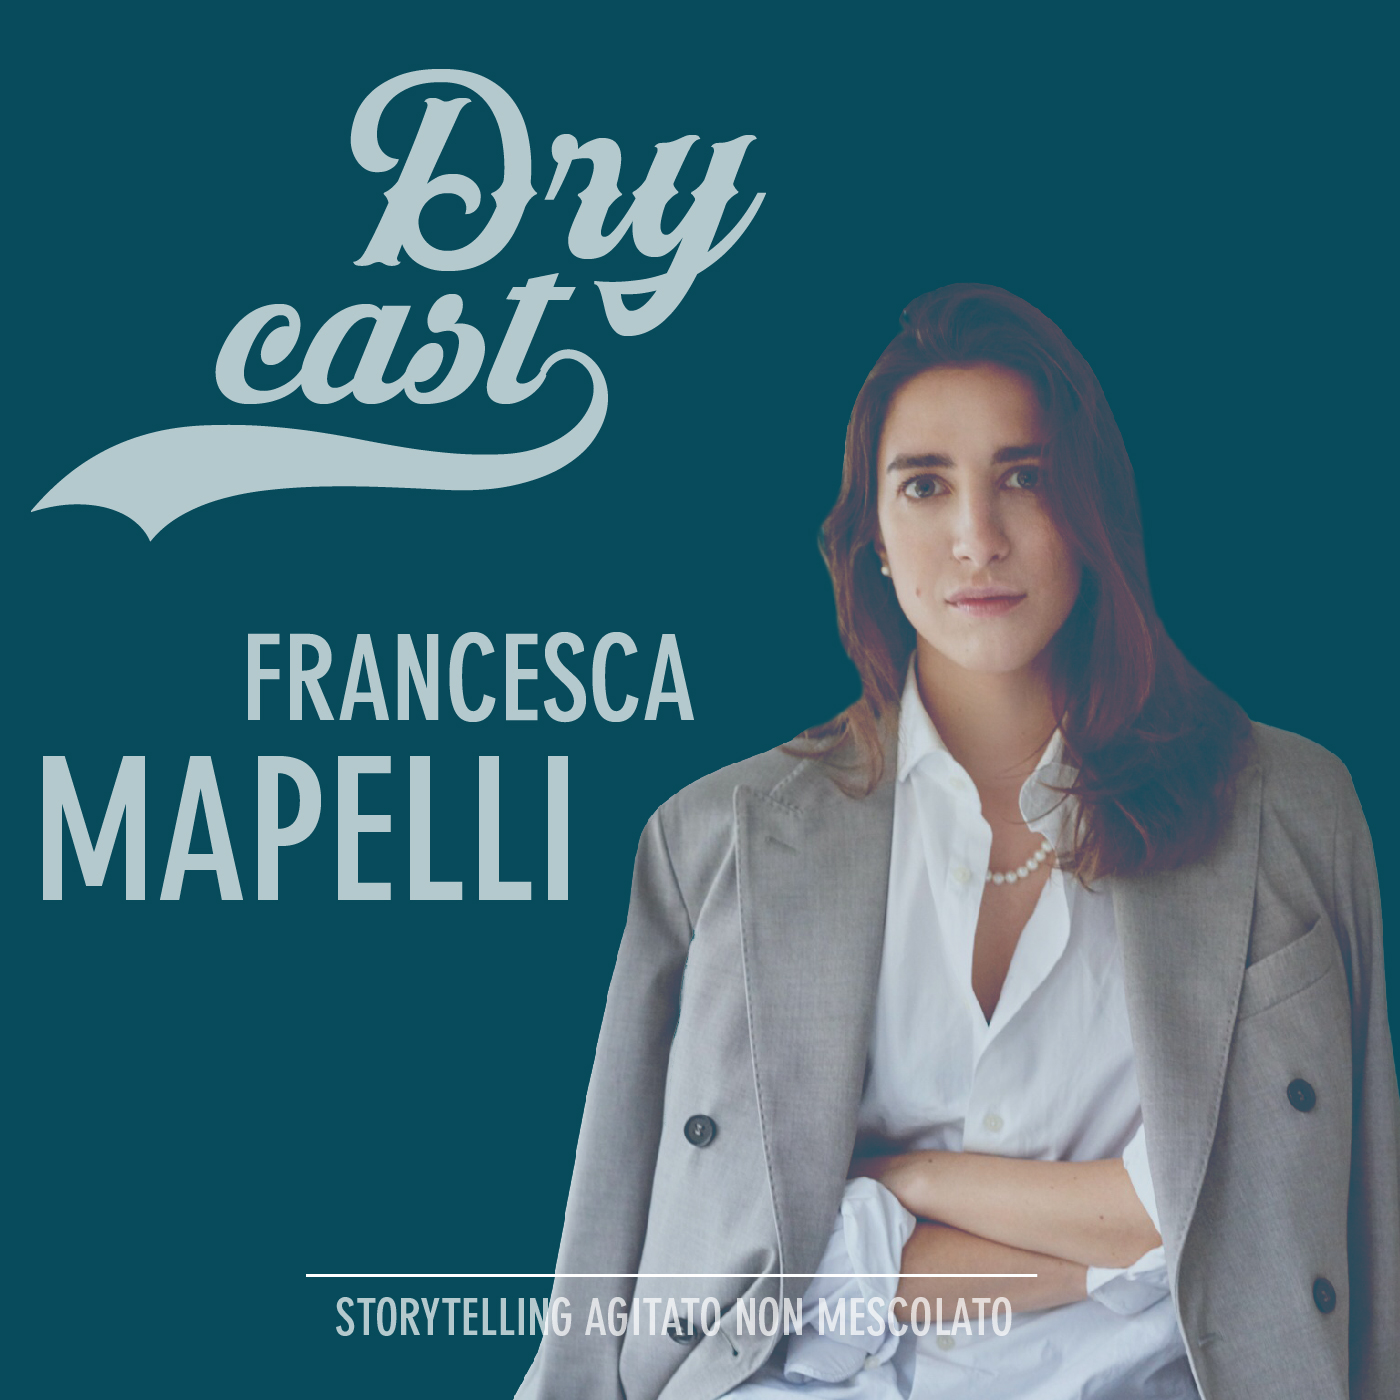 23 - Francesca Mapelli